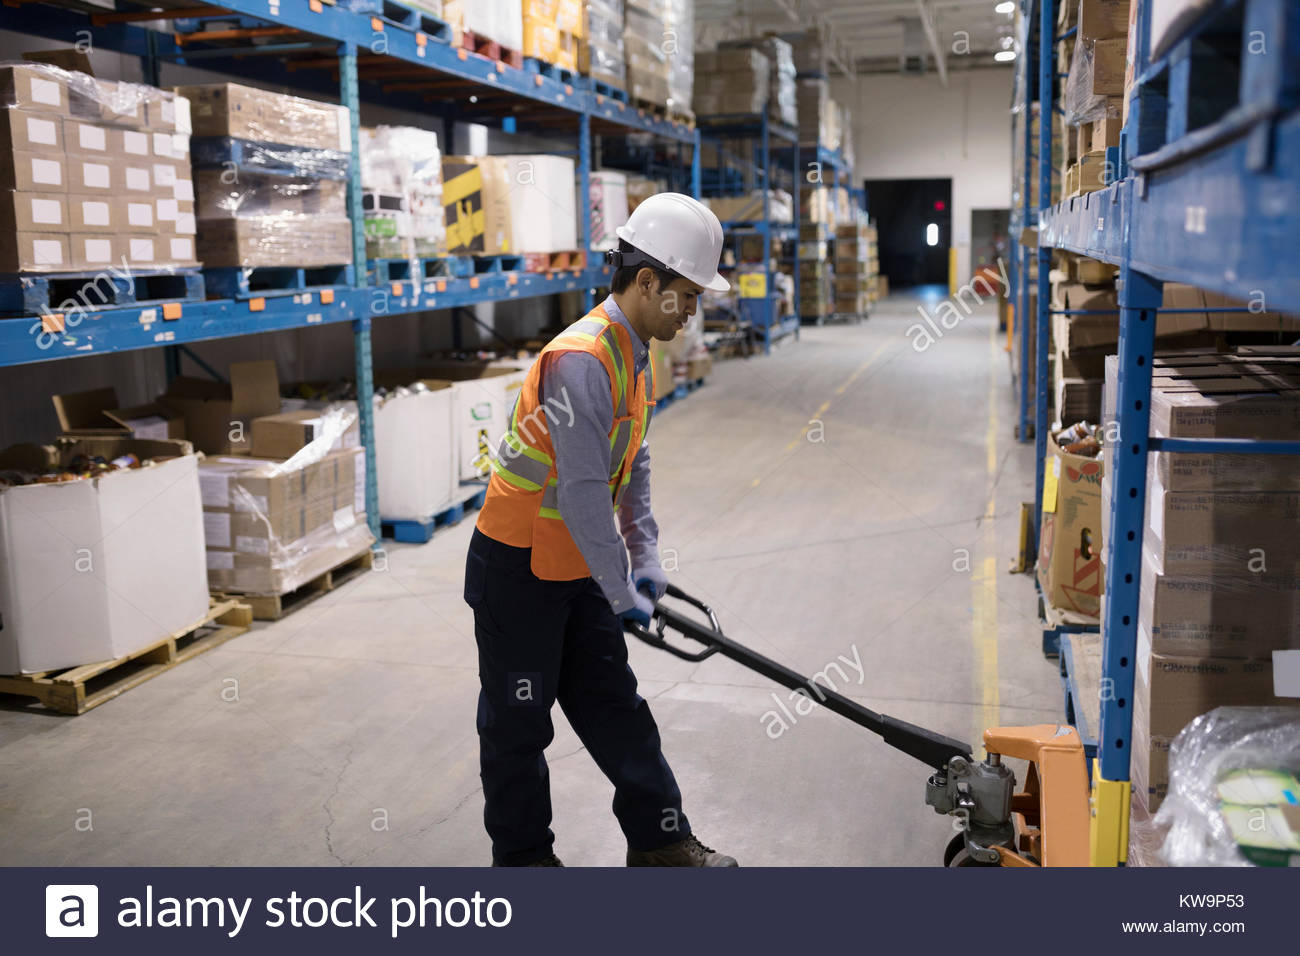 Worker using pallet jack in distribution warehouse - Stock Image